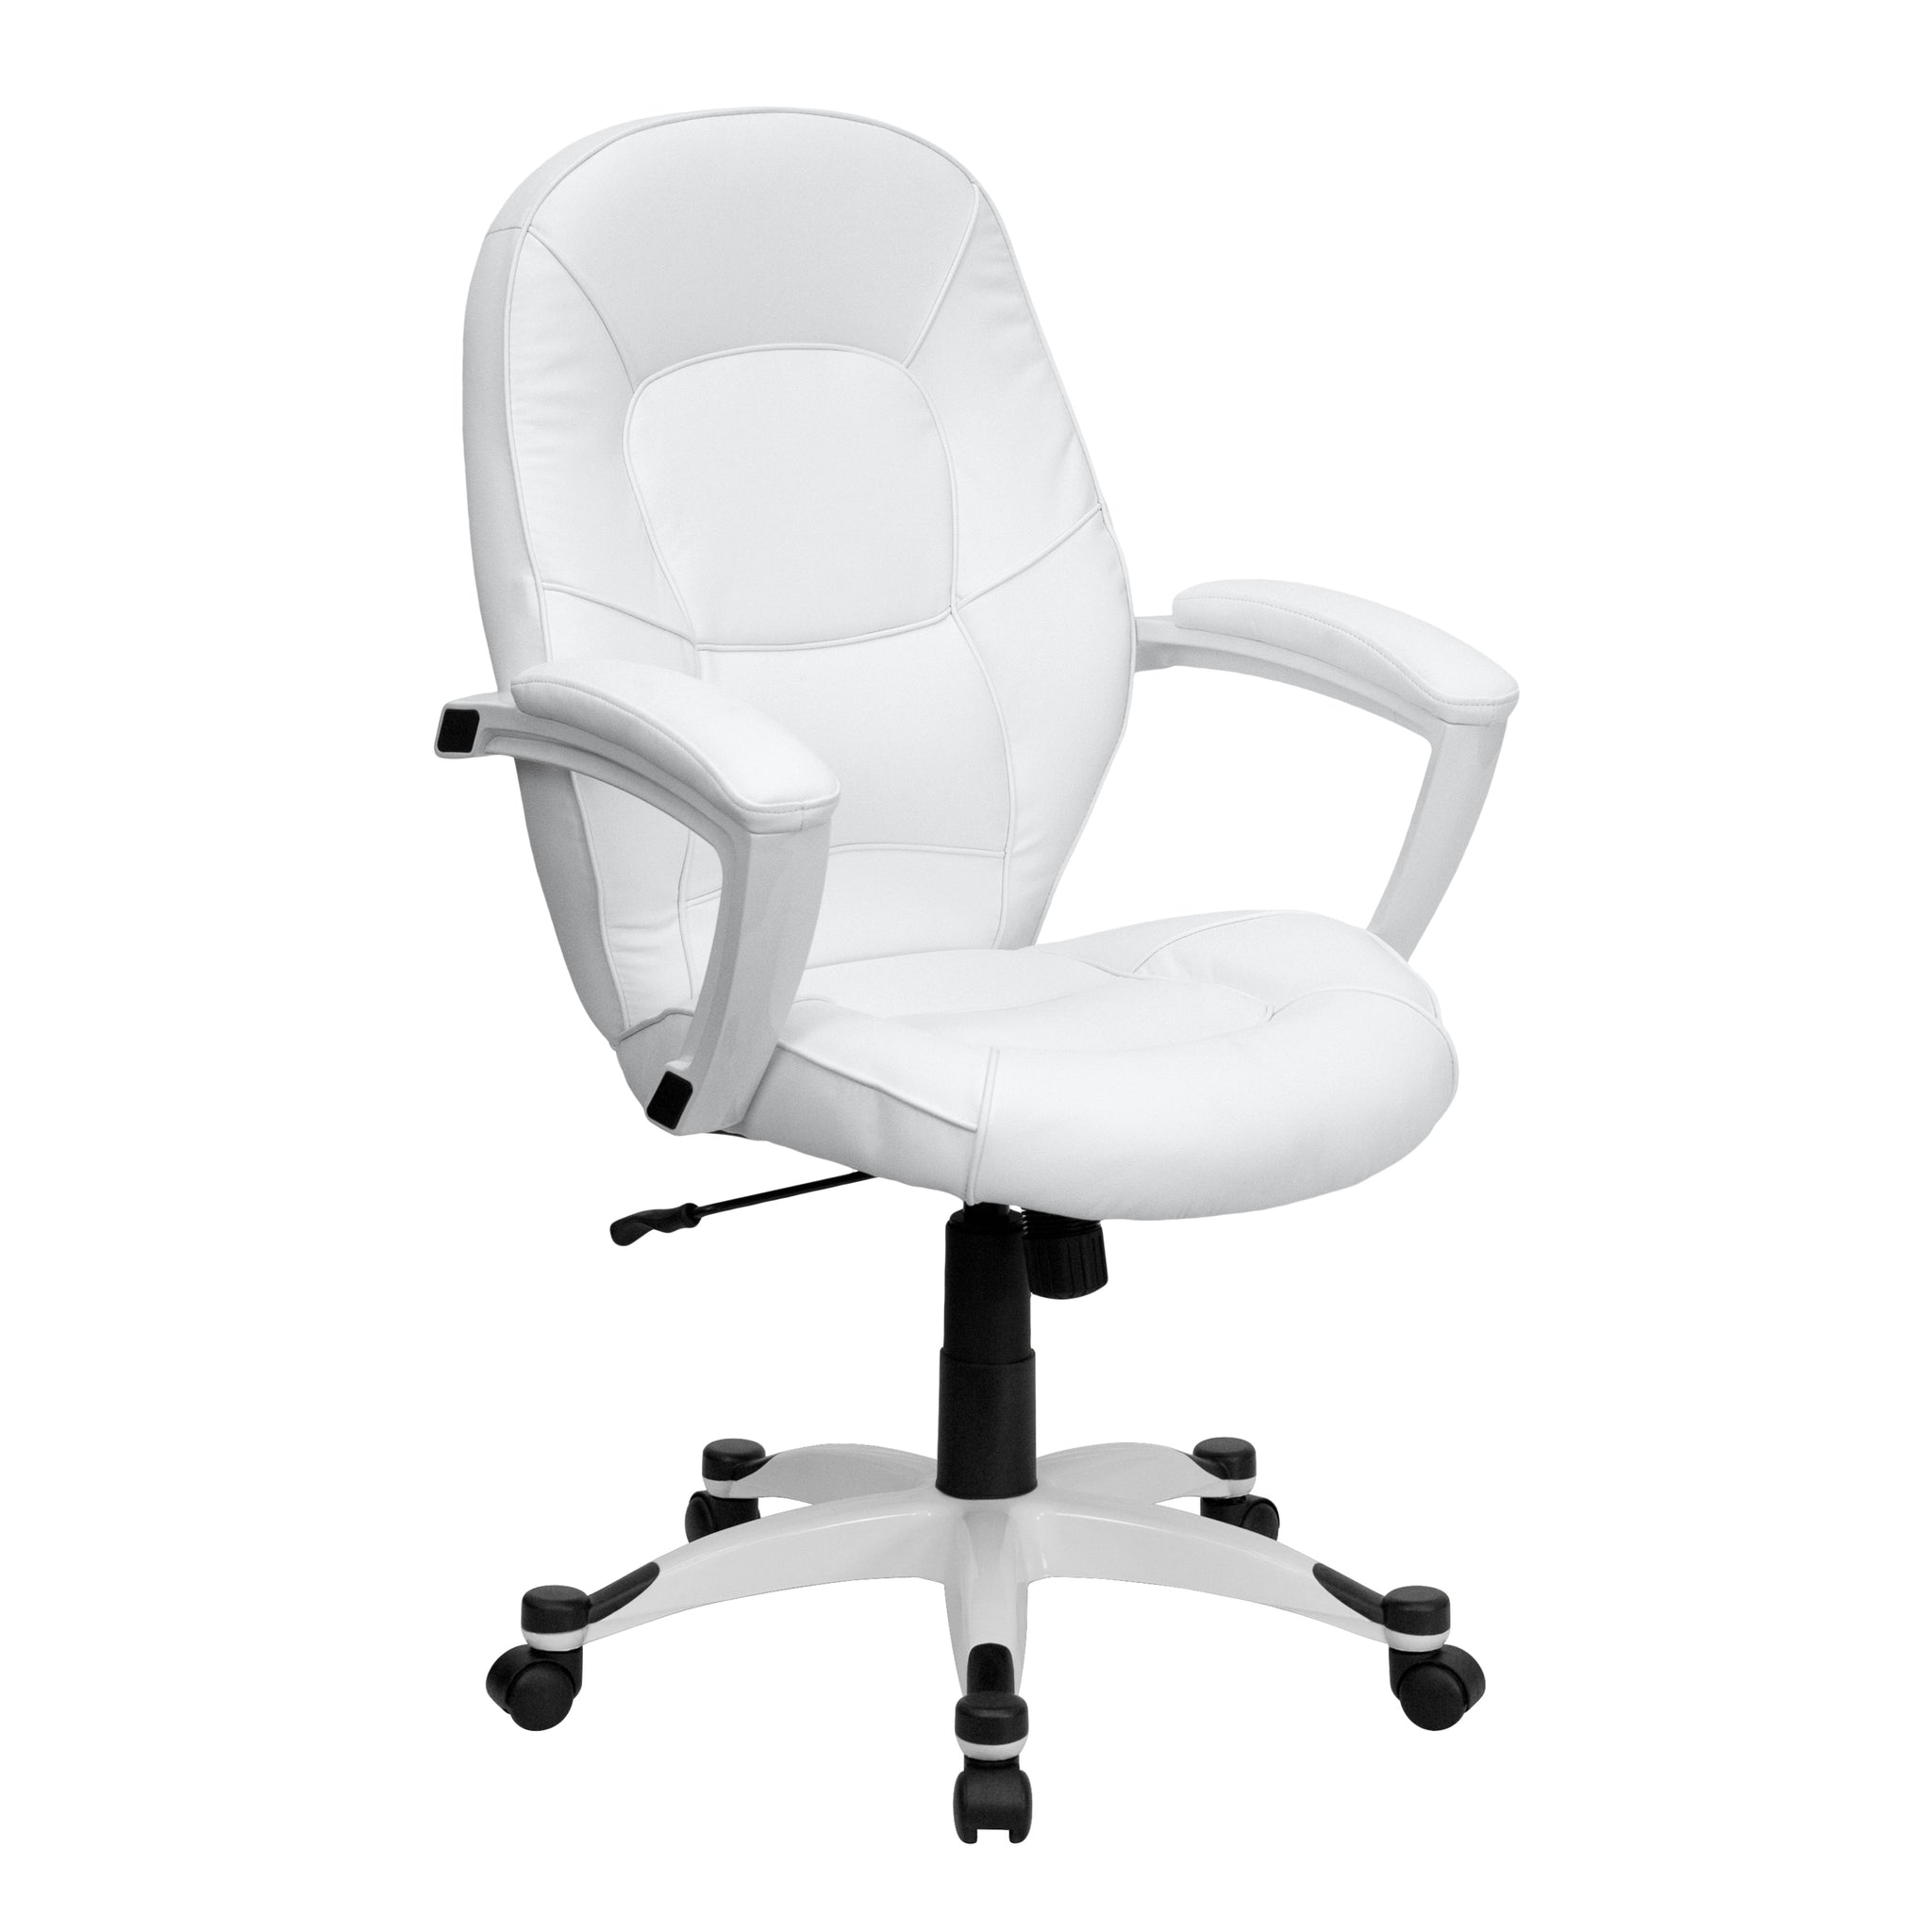 Mid-Back Leather Executive Swivel Office Chair: White